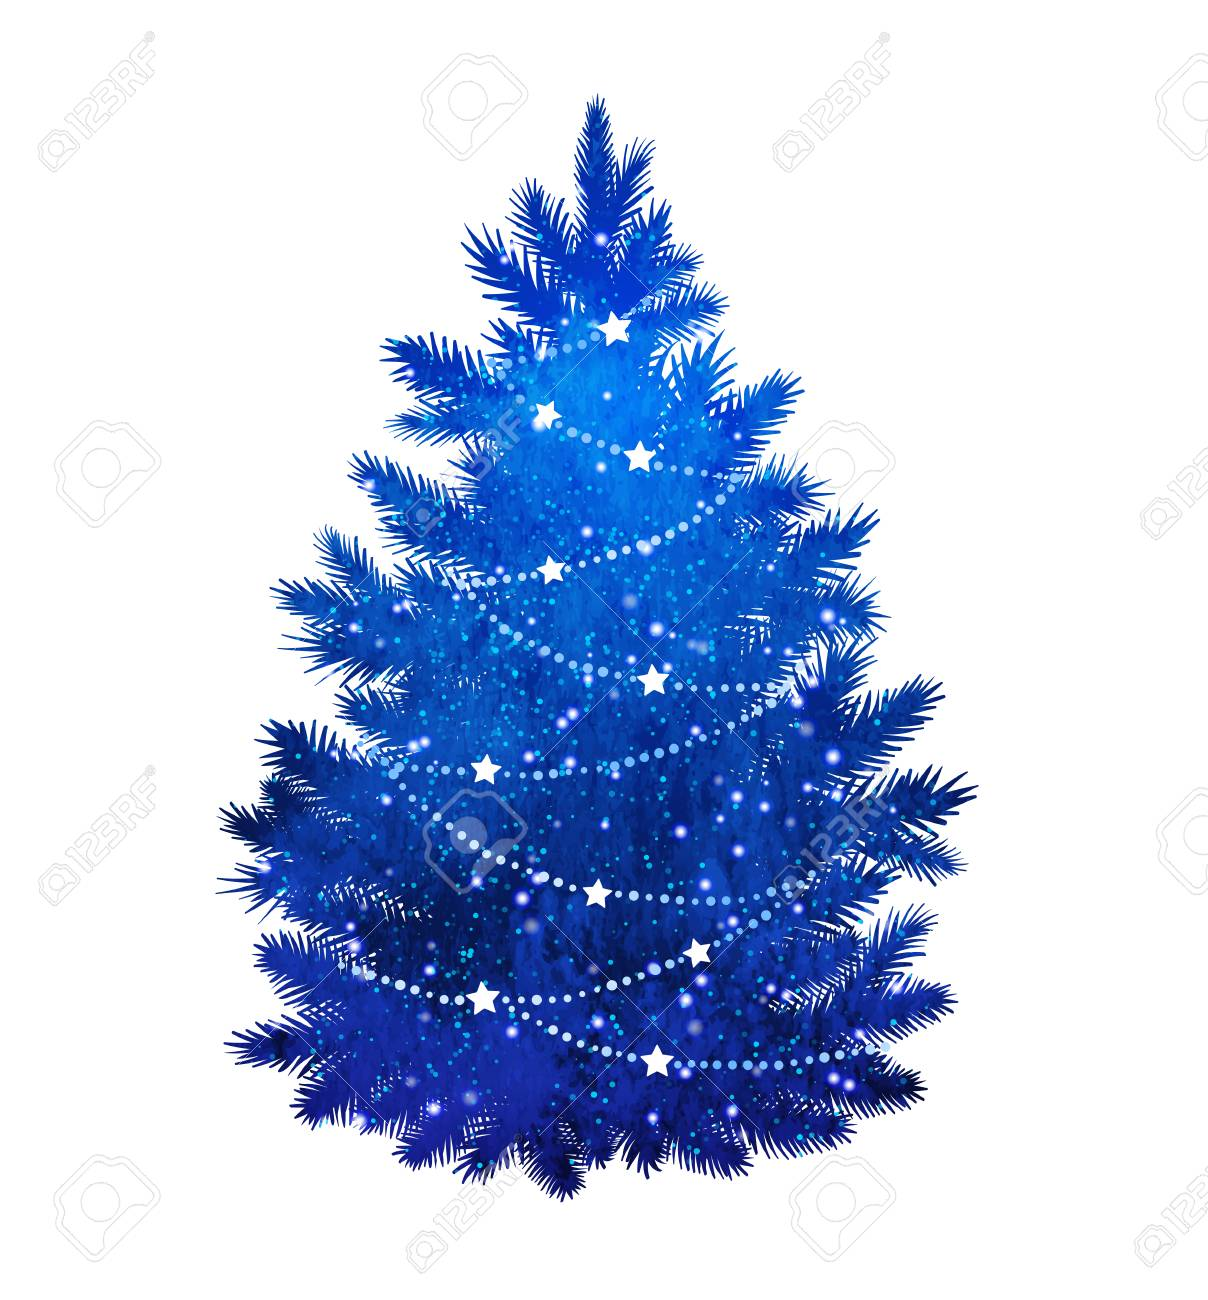 Christmas Tree Clipart Silhouette.Blue Silhouette Of Christmas Tree On White Background